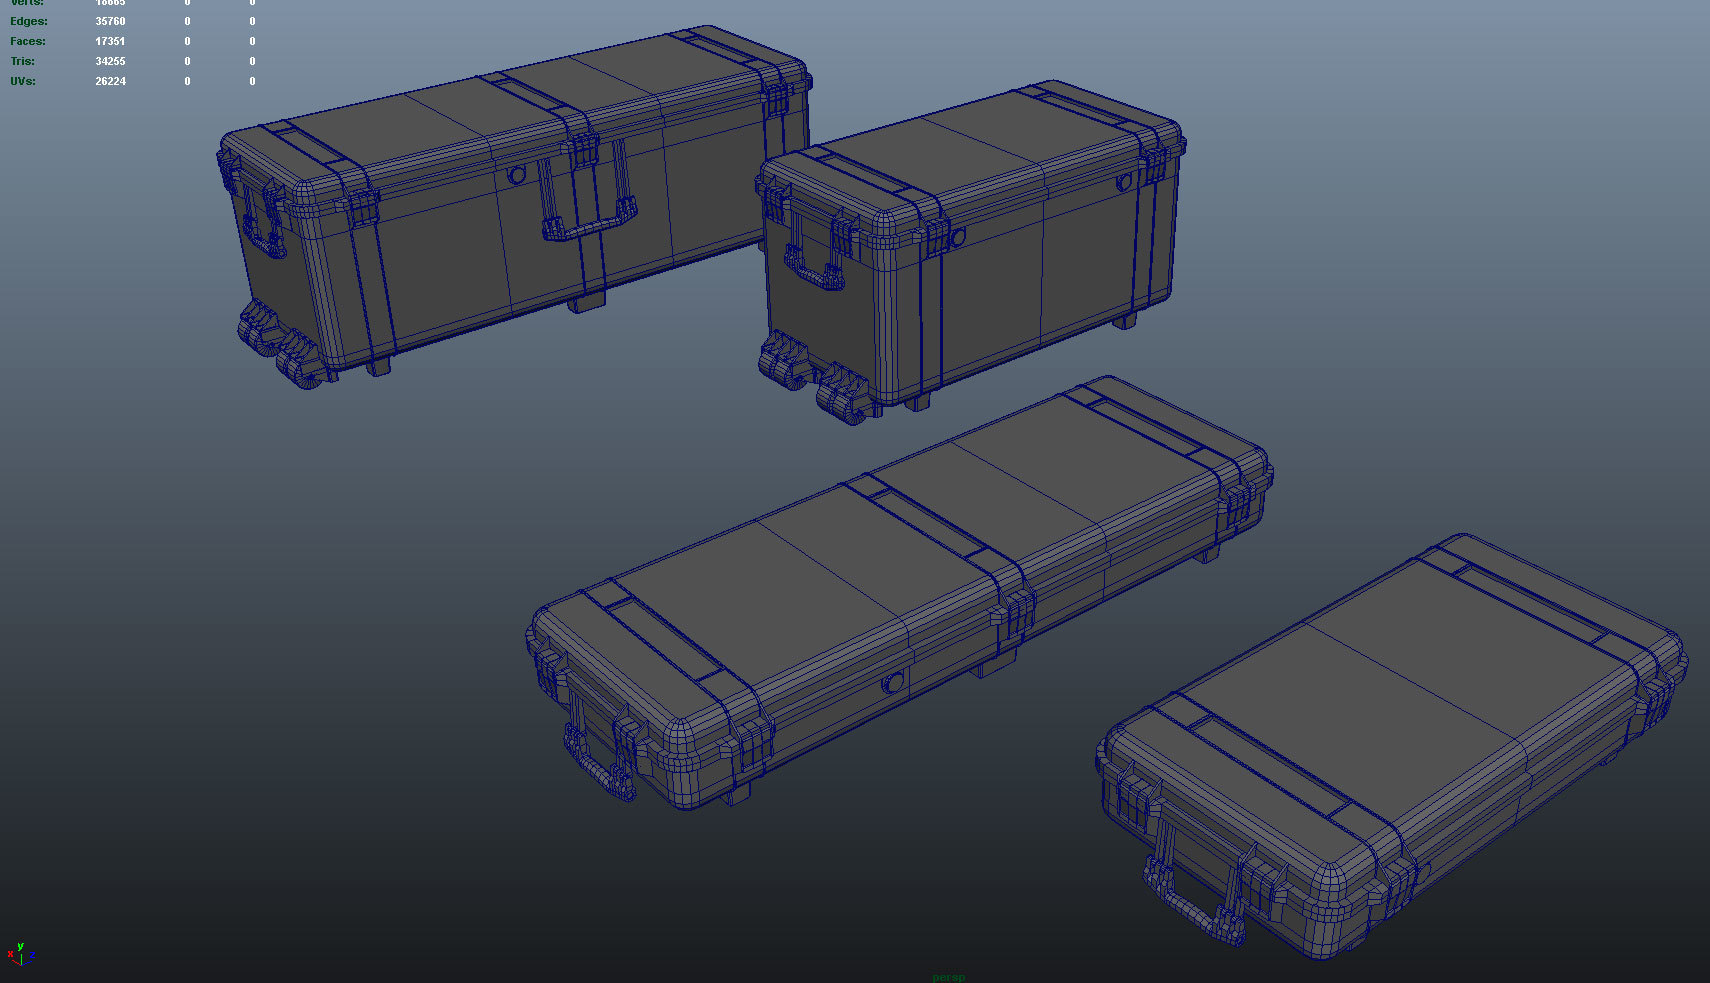 pelican-case-screenshot1.jpg